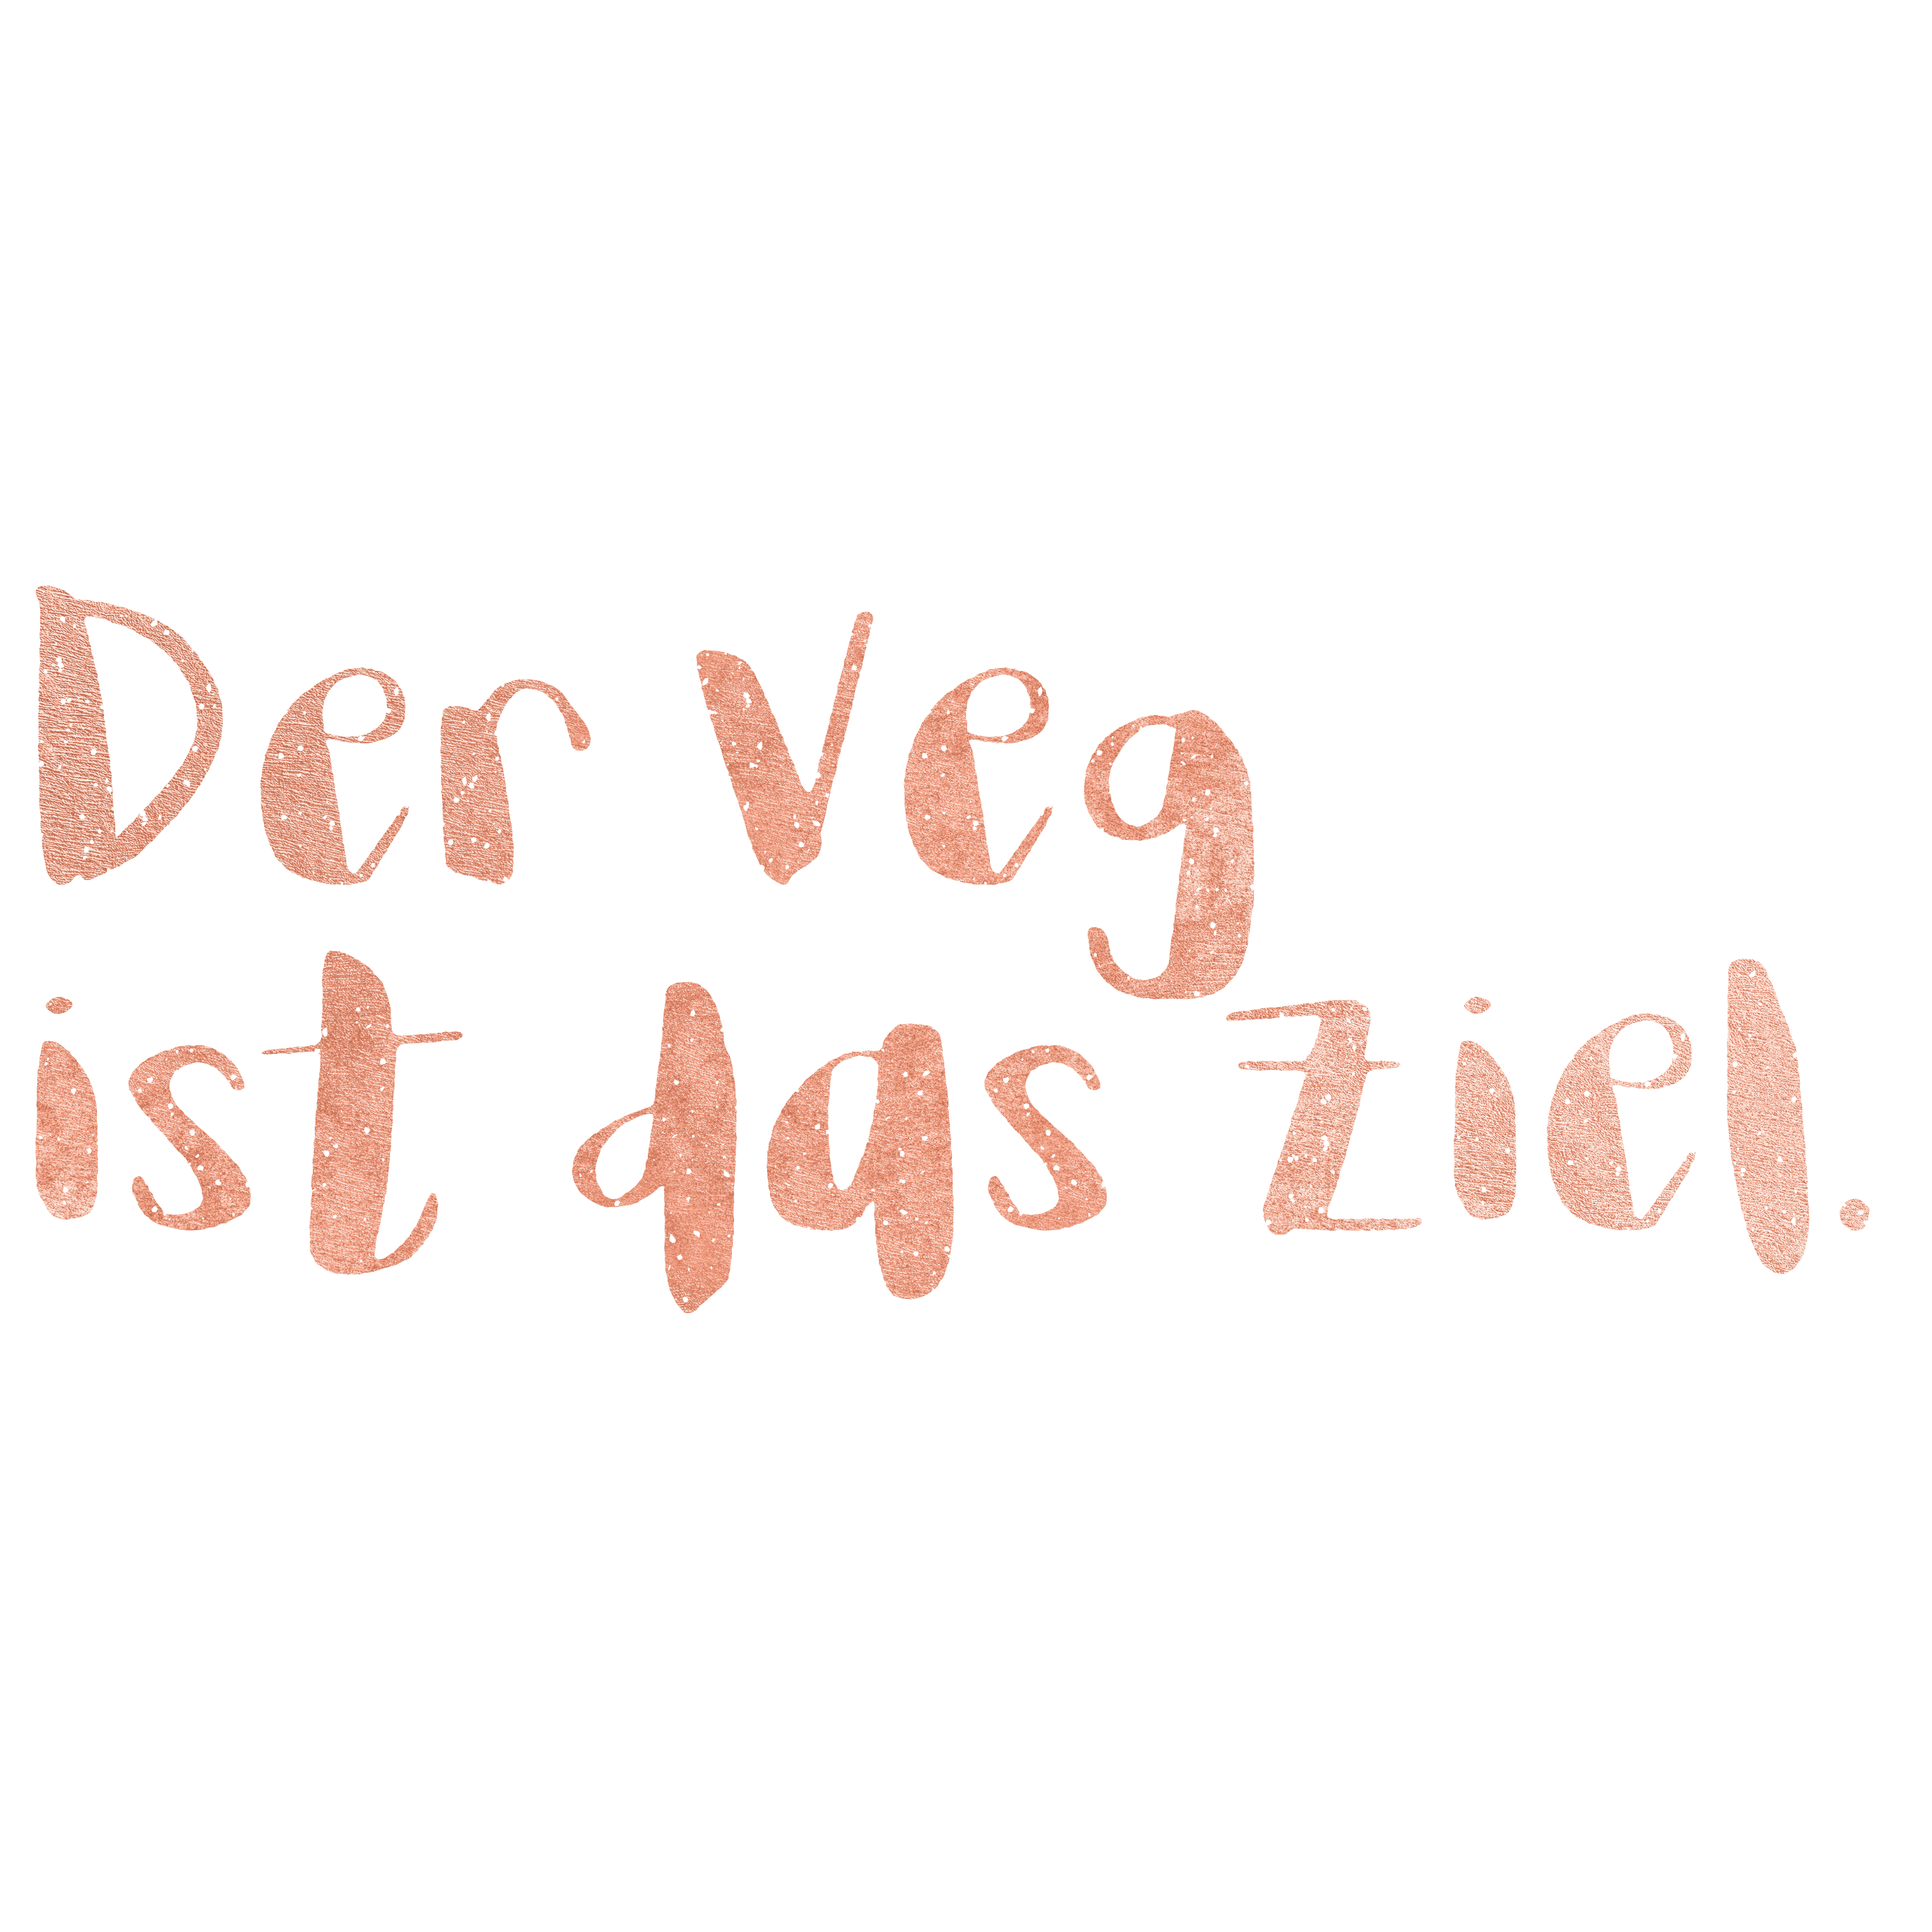 Der Veg ist das Ziel. logo